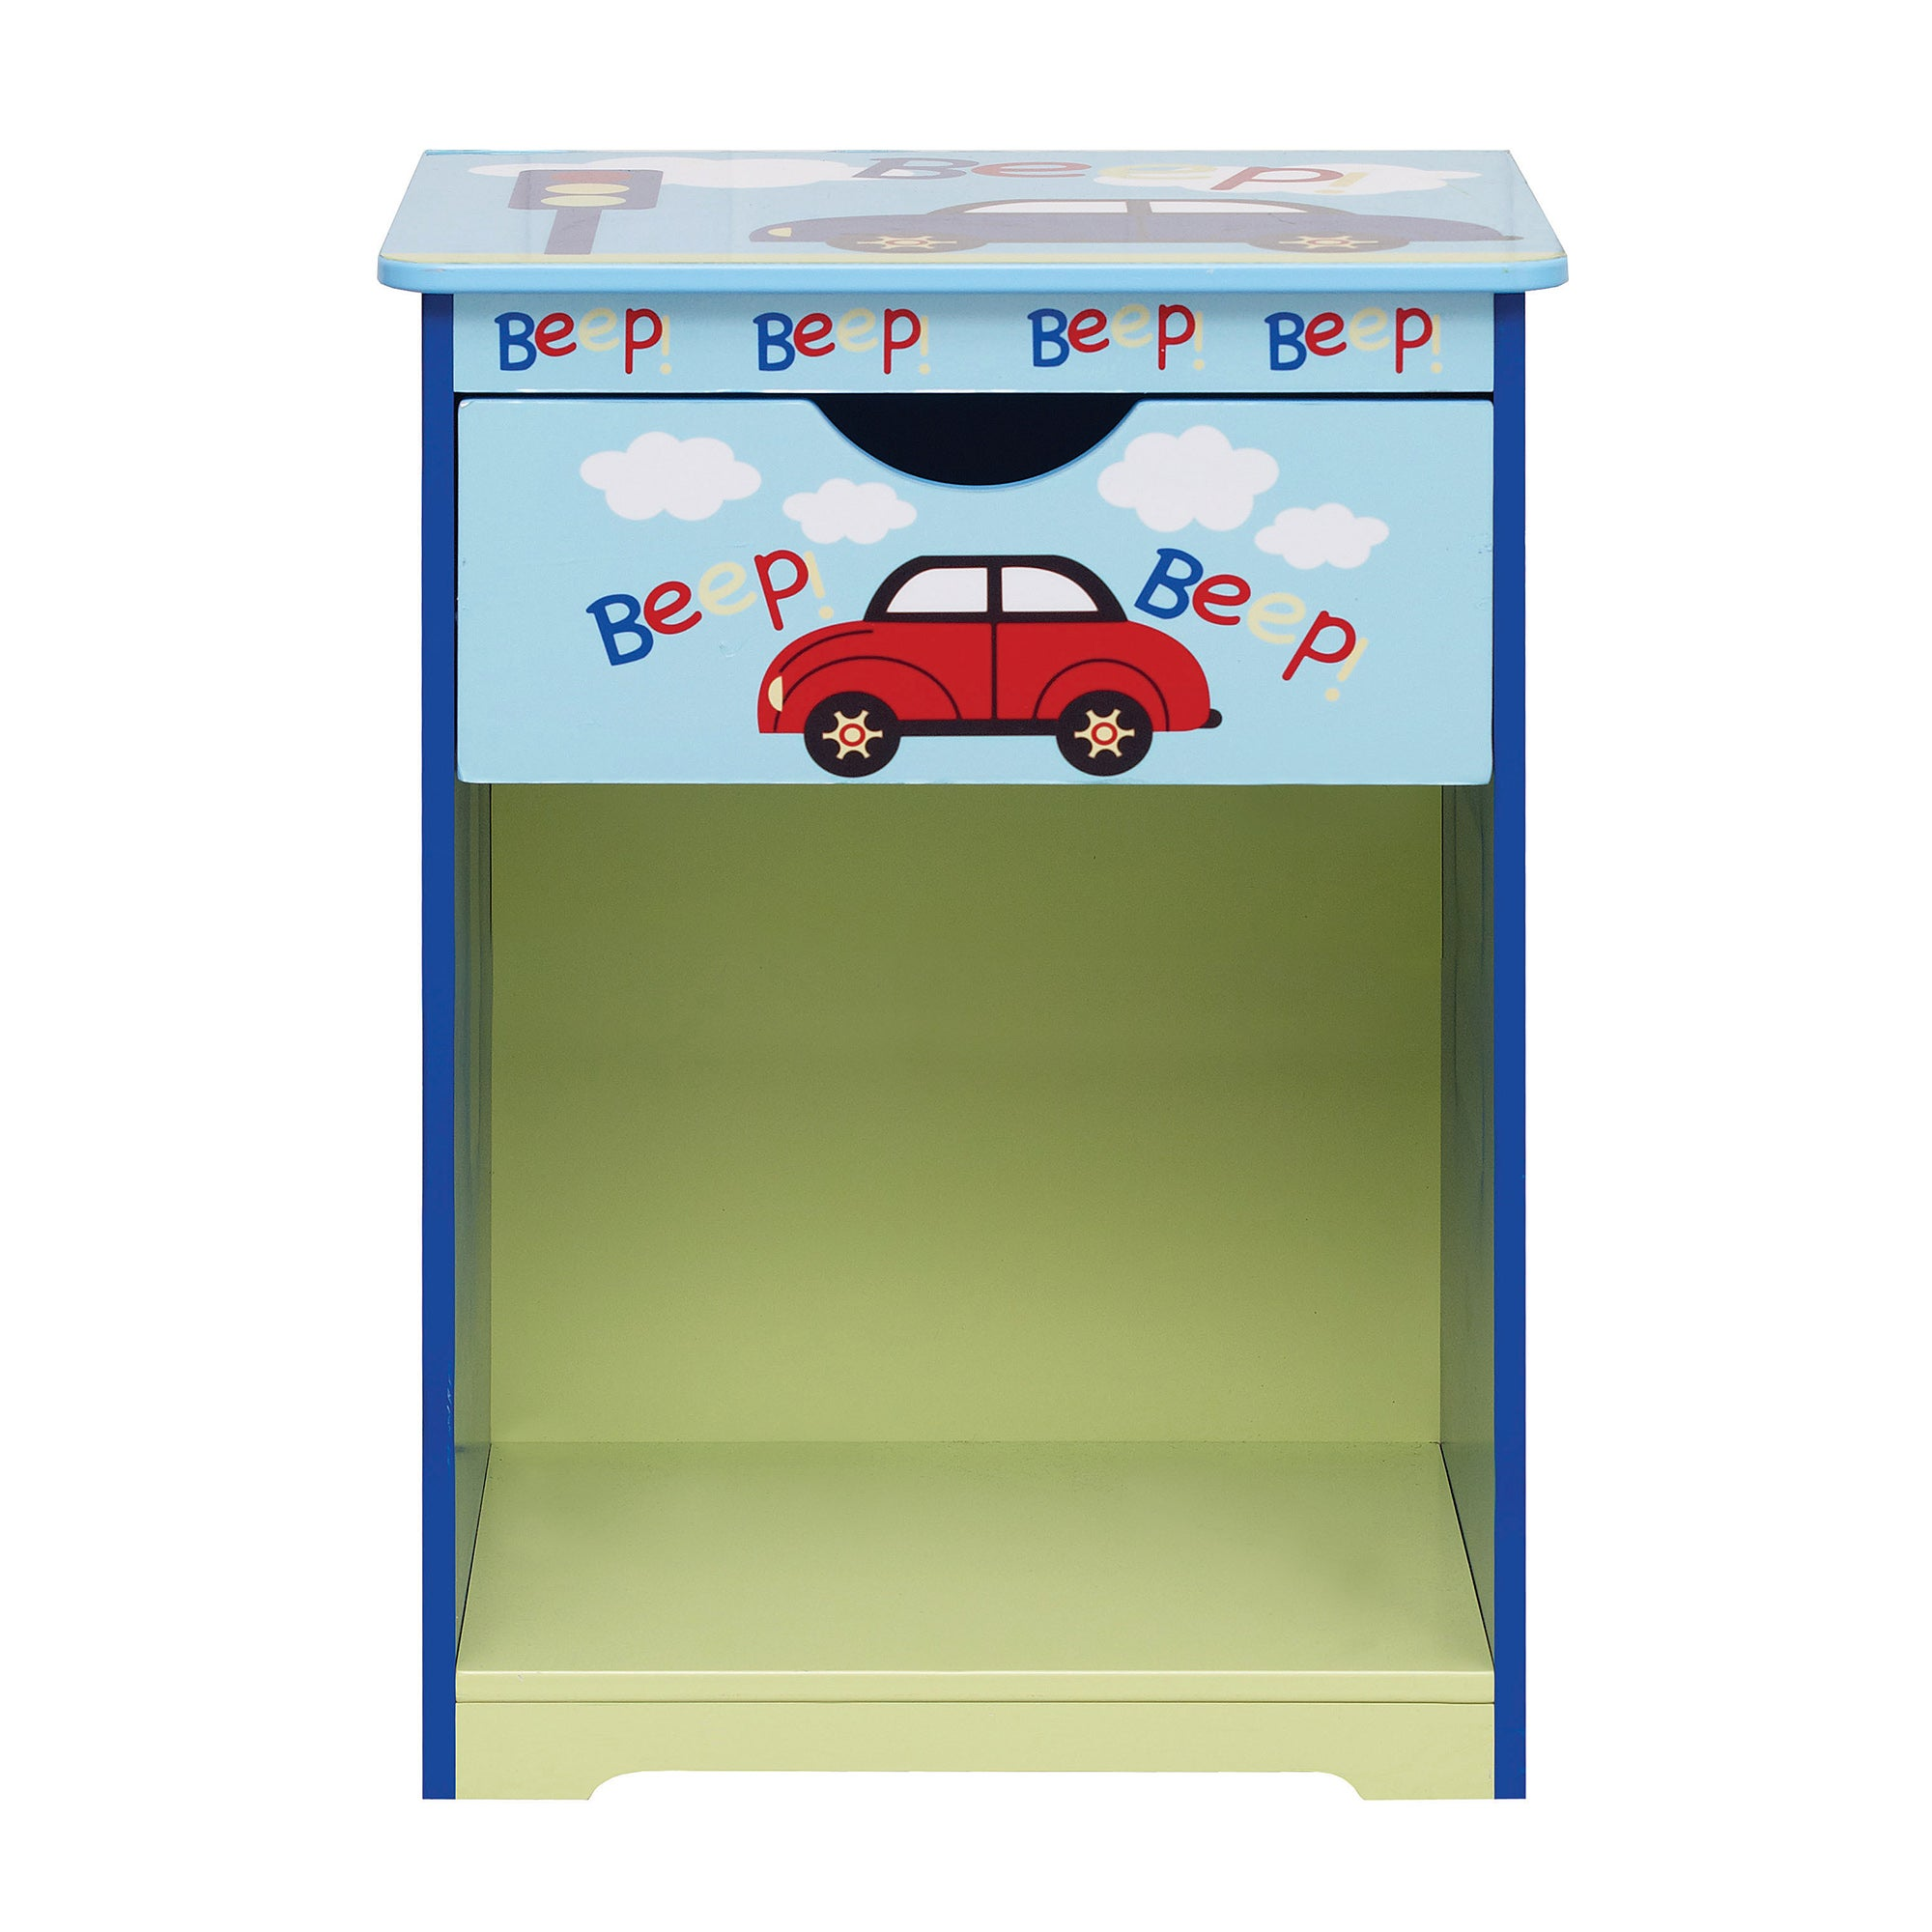 Kids Beep Beep Bedside Table